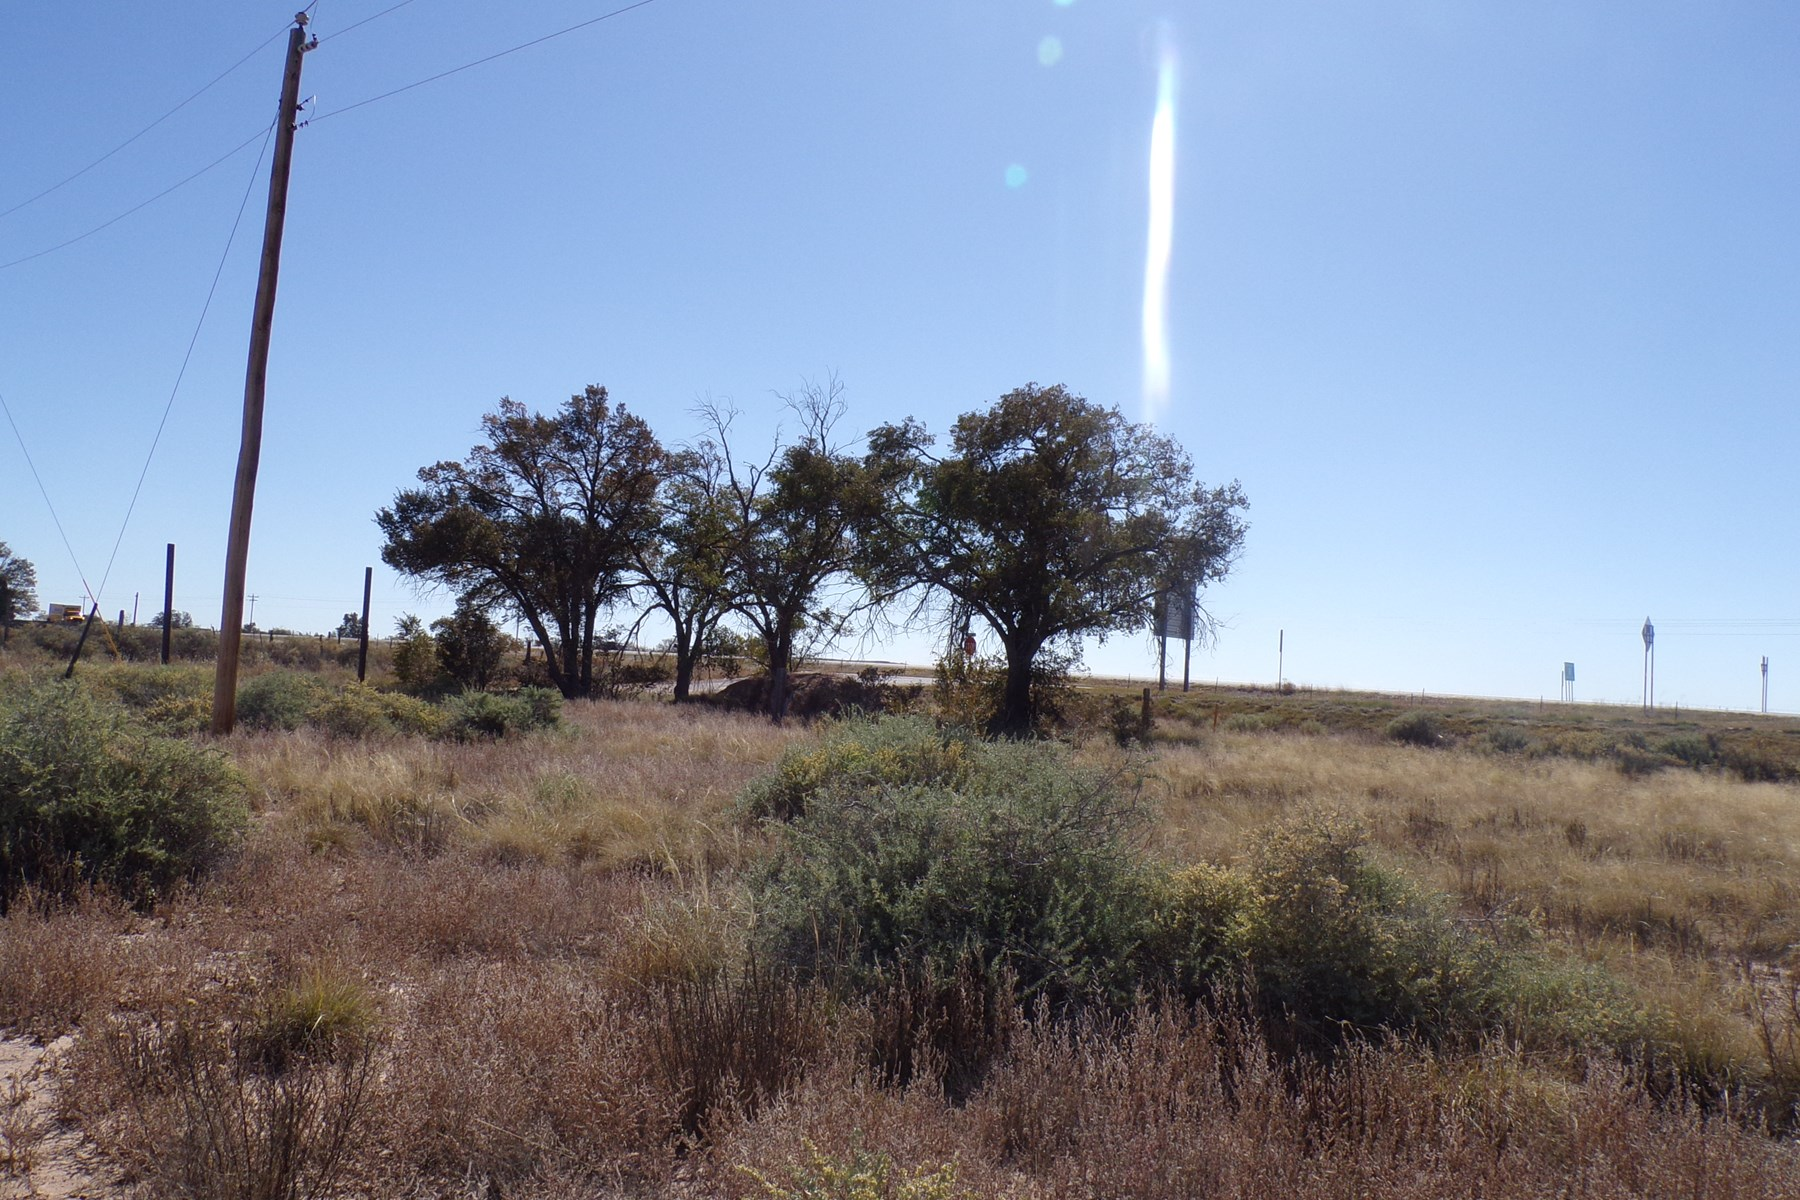 1.95 Acre Lot For Sale Moriarty New Mexico with Water Wells